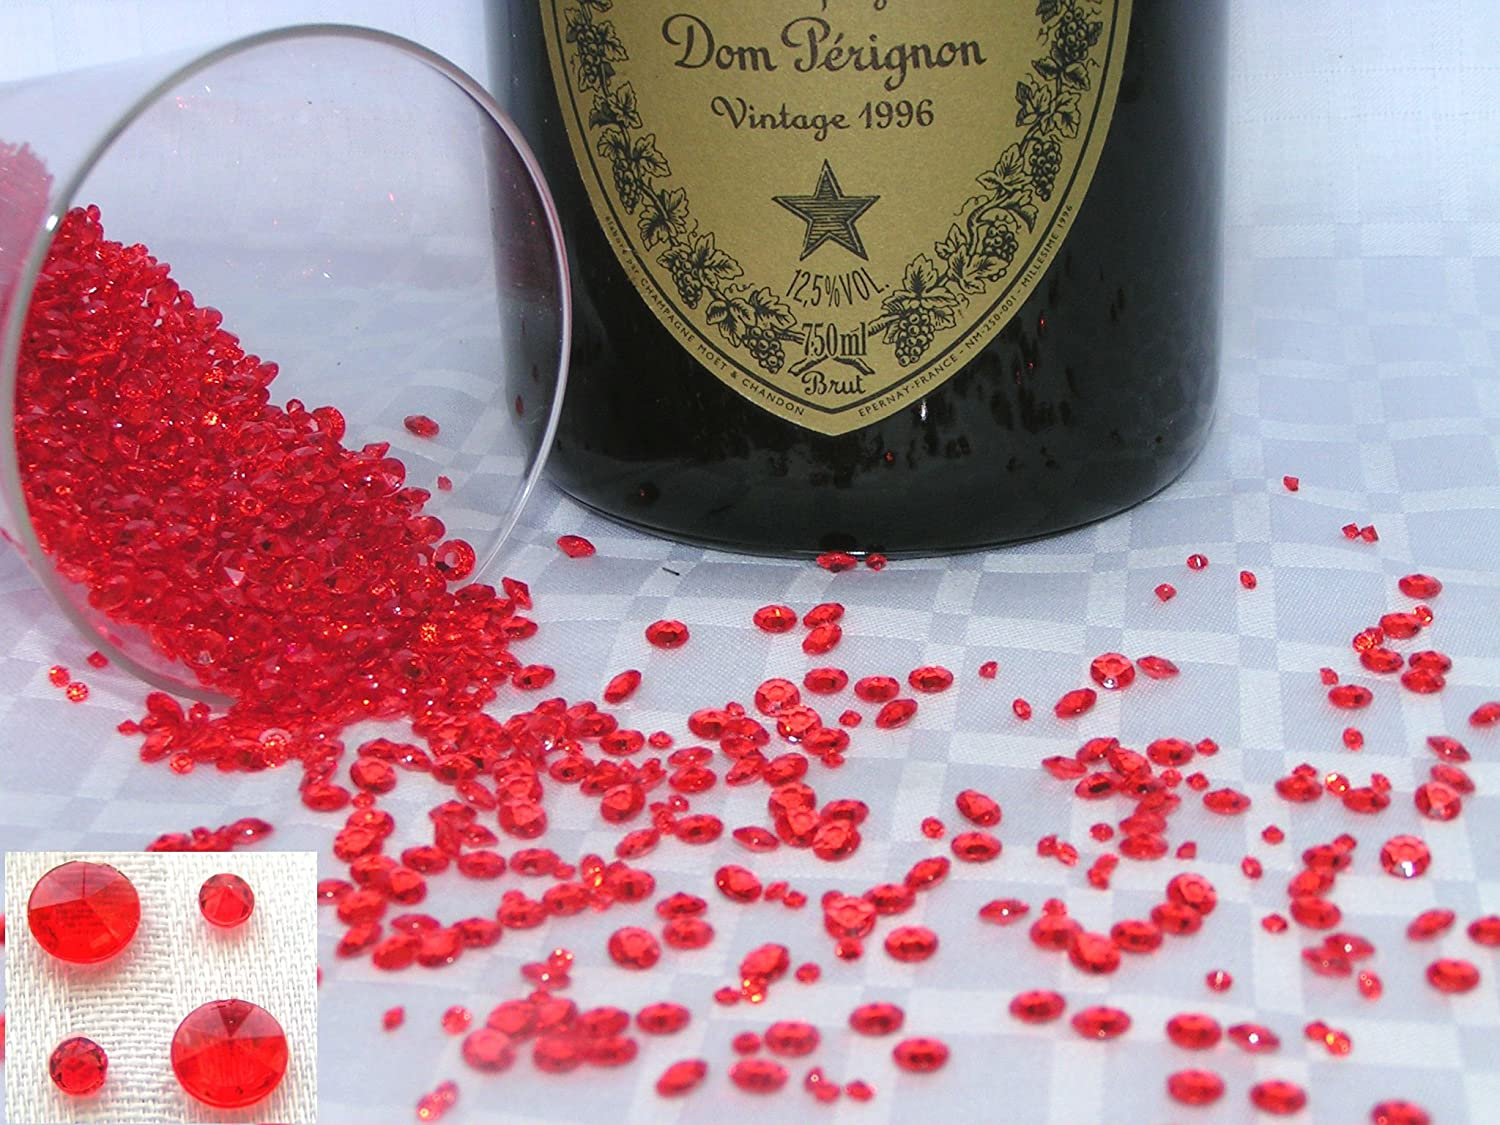 4000 ruby red 6 crystal diamond scatter table decorations 4000 ruby red 6 crystal diamond scatter table decorations celebrations wedding confetti party gems gem stones special occasion 6 amazon junglespirit Gallery